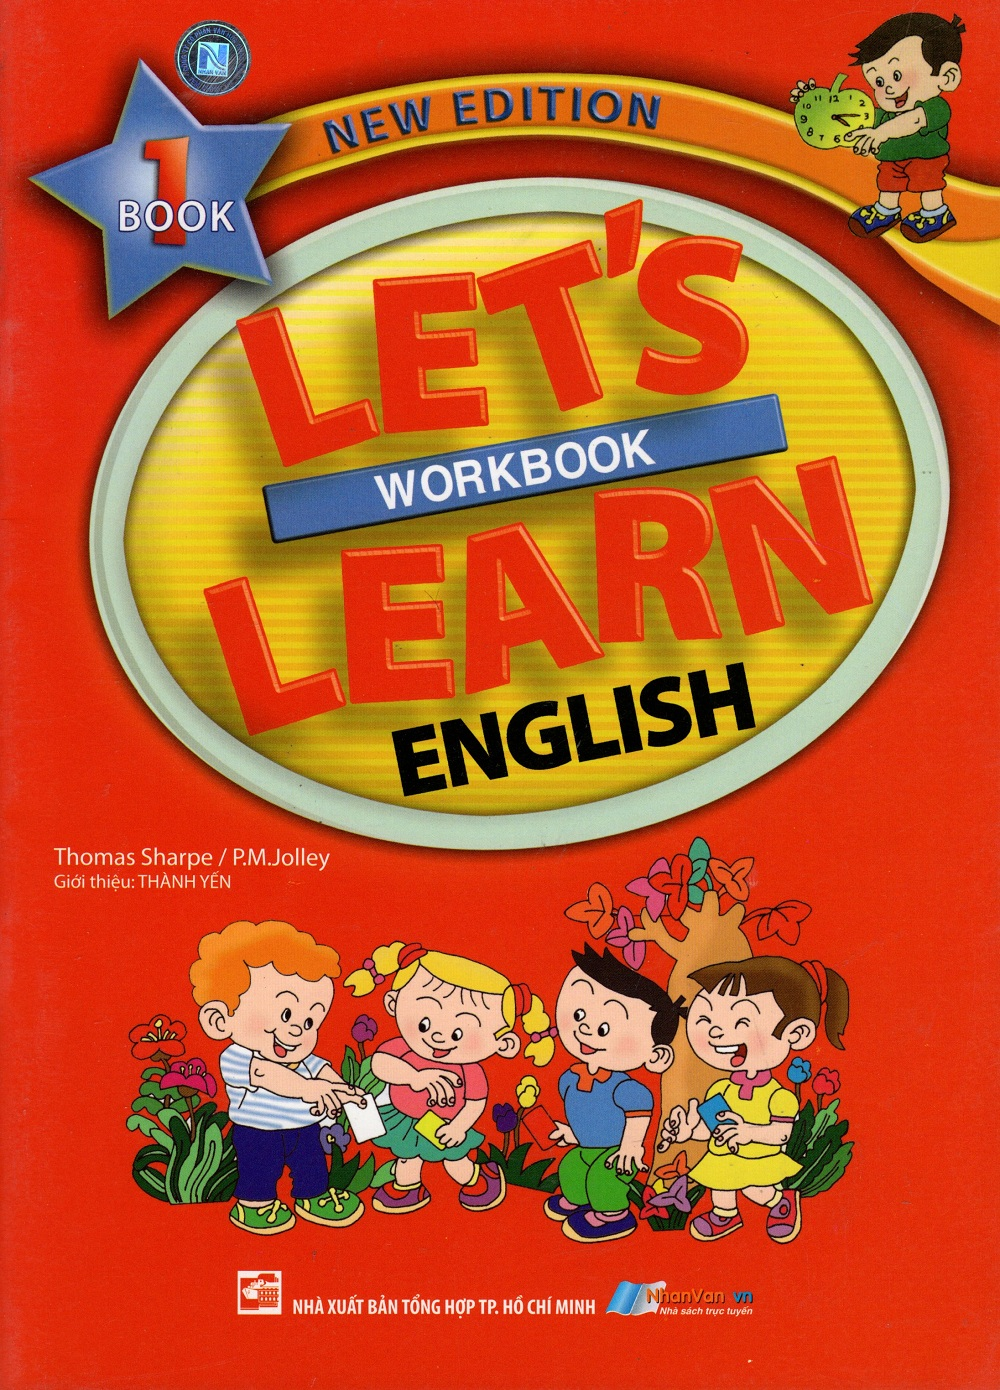 Bìa sách Lets Learn English - Workbook 1 (New Edition)